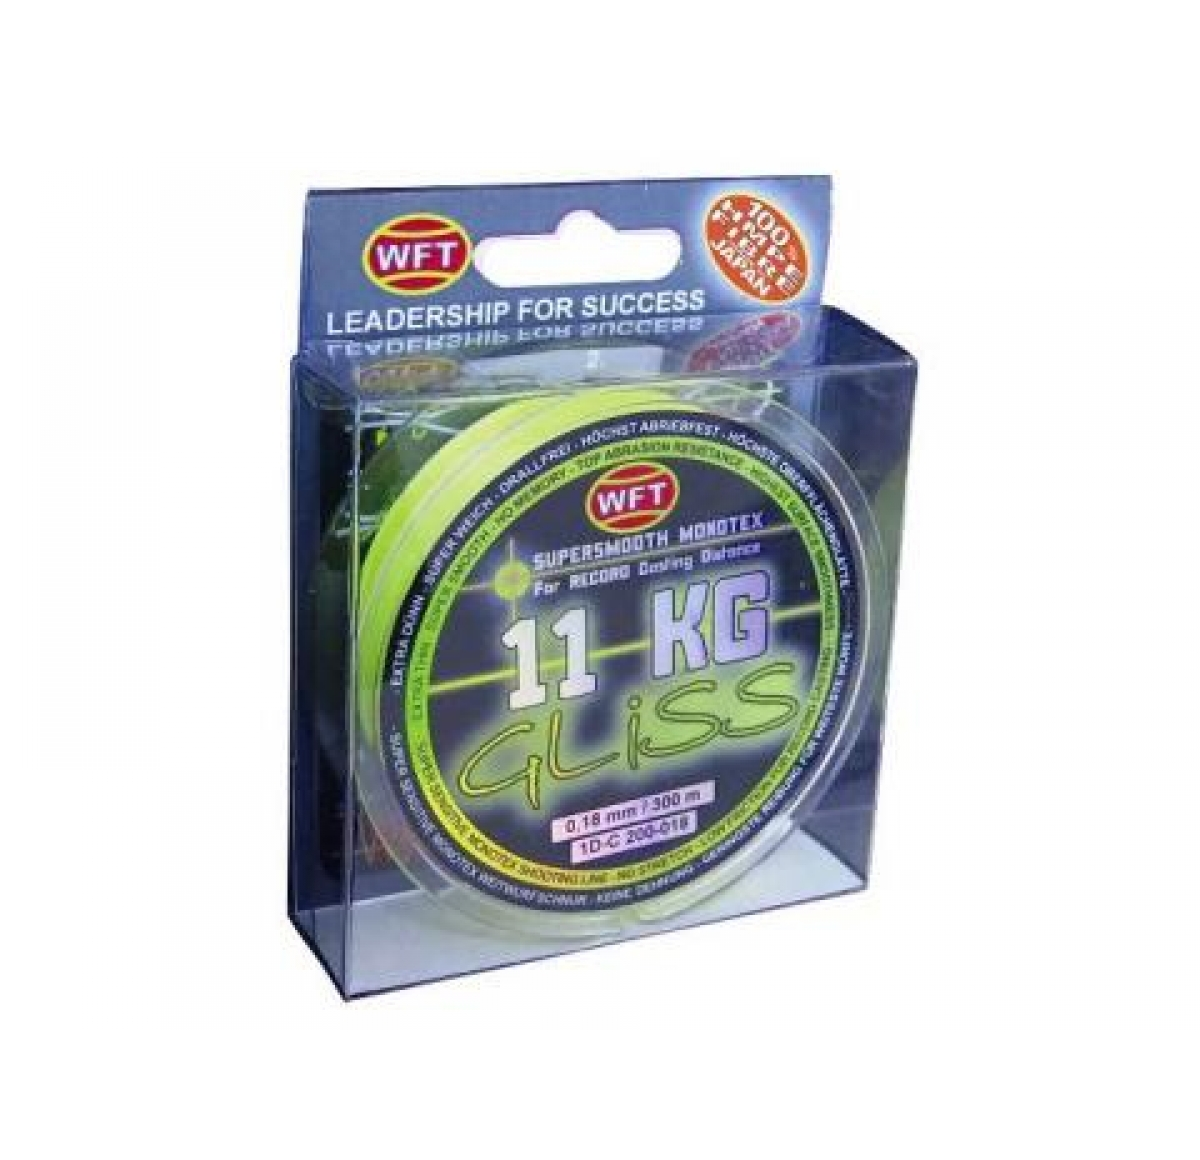 WFT GLISS yellow 150m 4KG 0.10mm